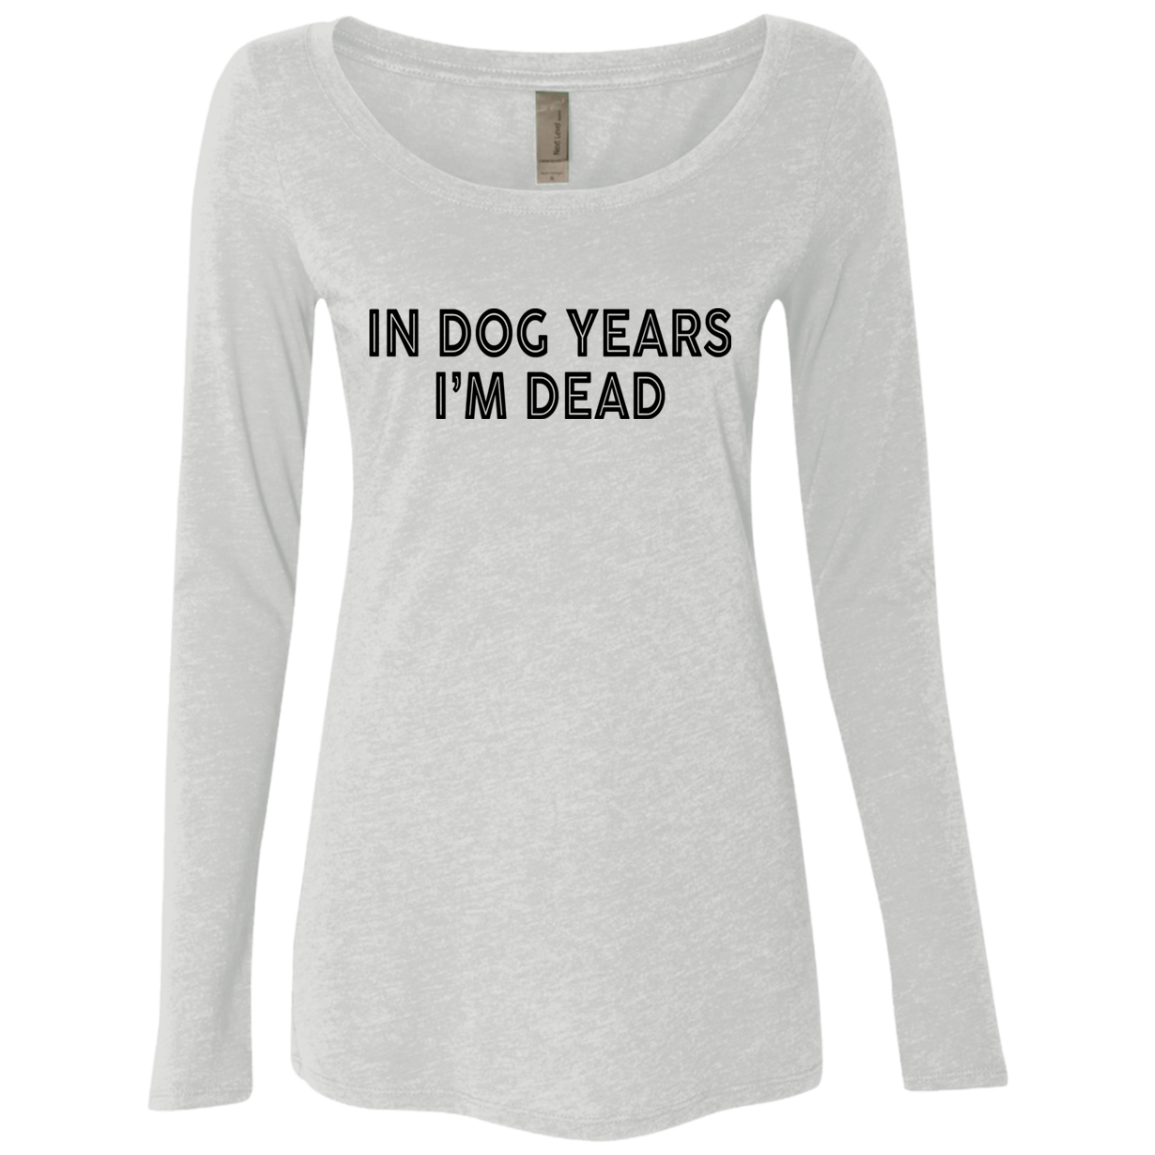 In Dog Years I'm Dead Women's Long Sleeve Tee